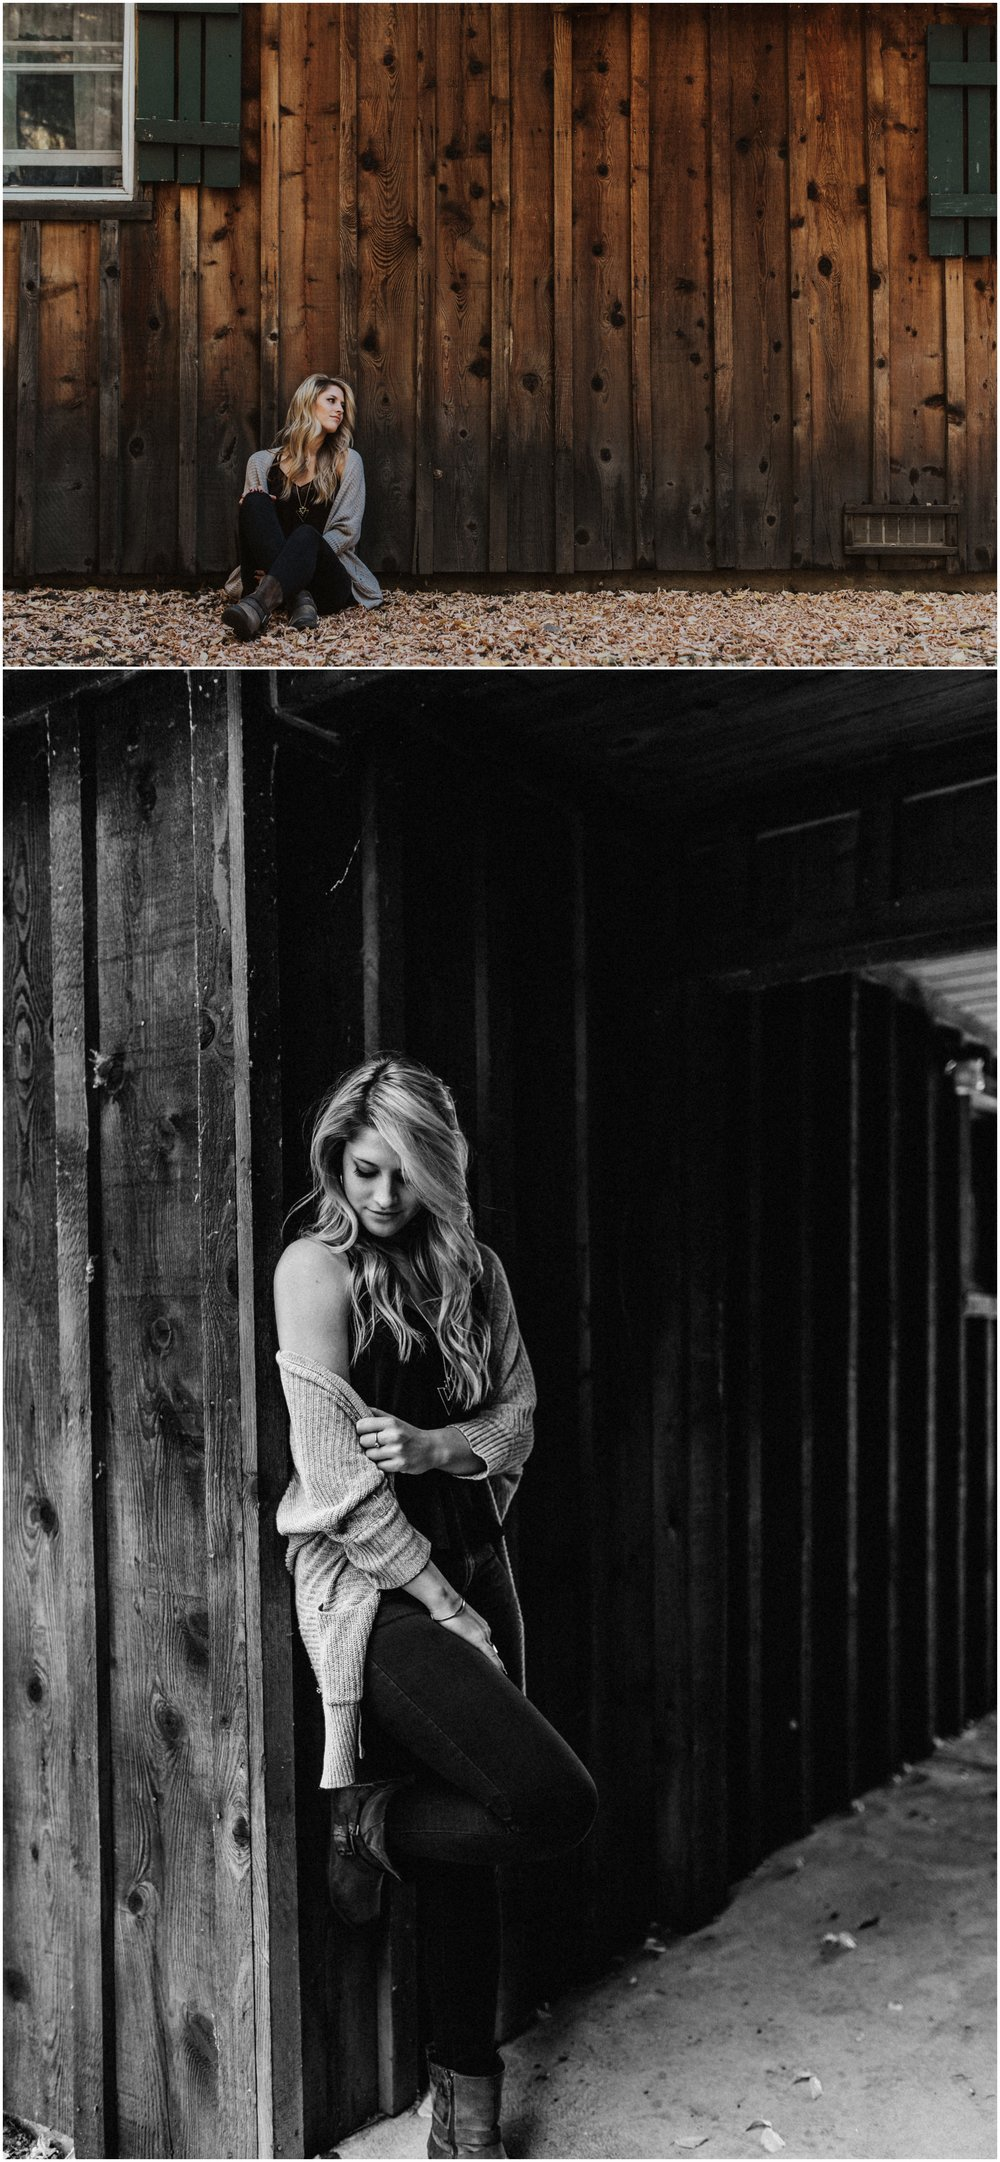 Makayla Madden Photography Boise, Idaho Senior, Boudoir, and Wedding Photographer Fairfield Idaho Fall Senior girl Mountains inspiration Aspen Trees